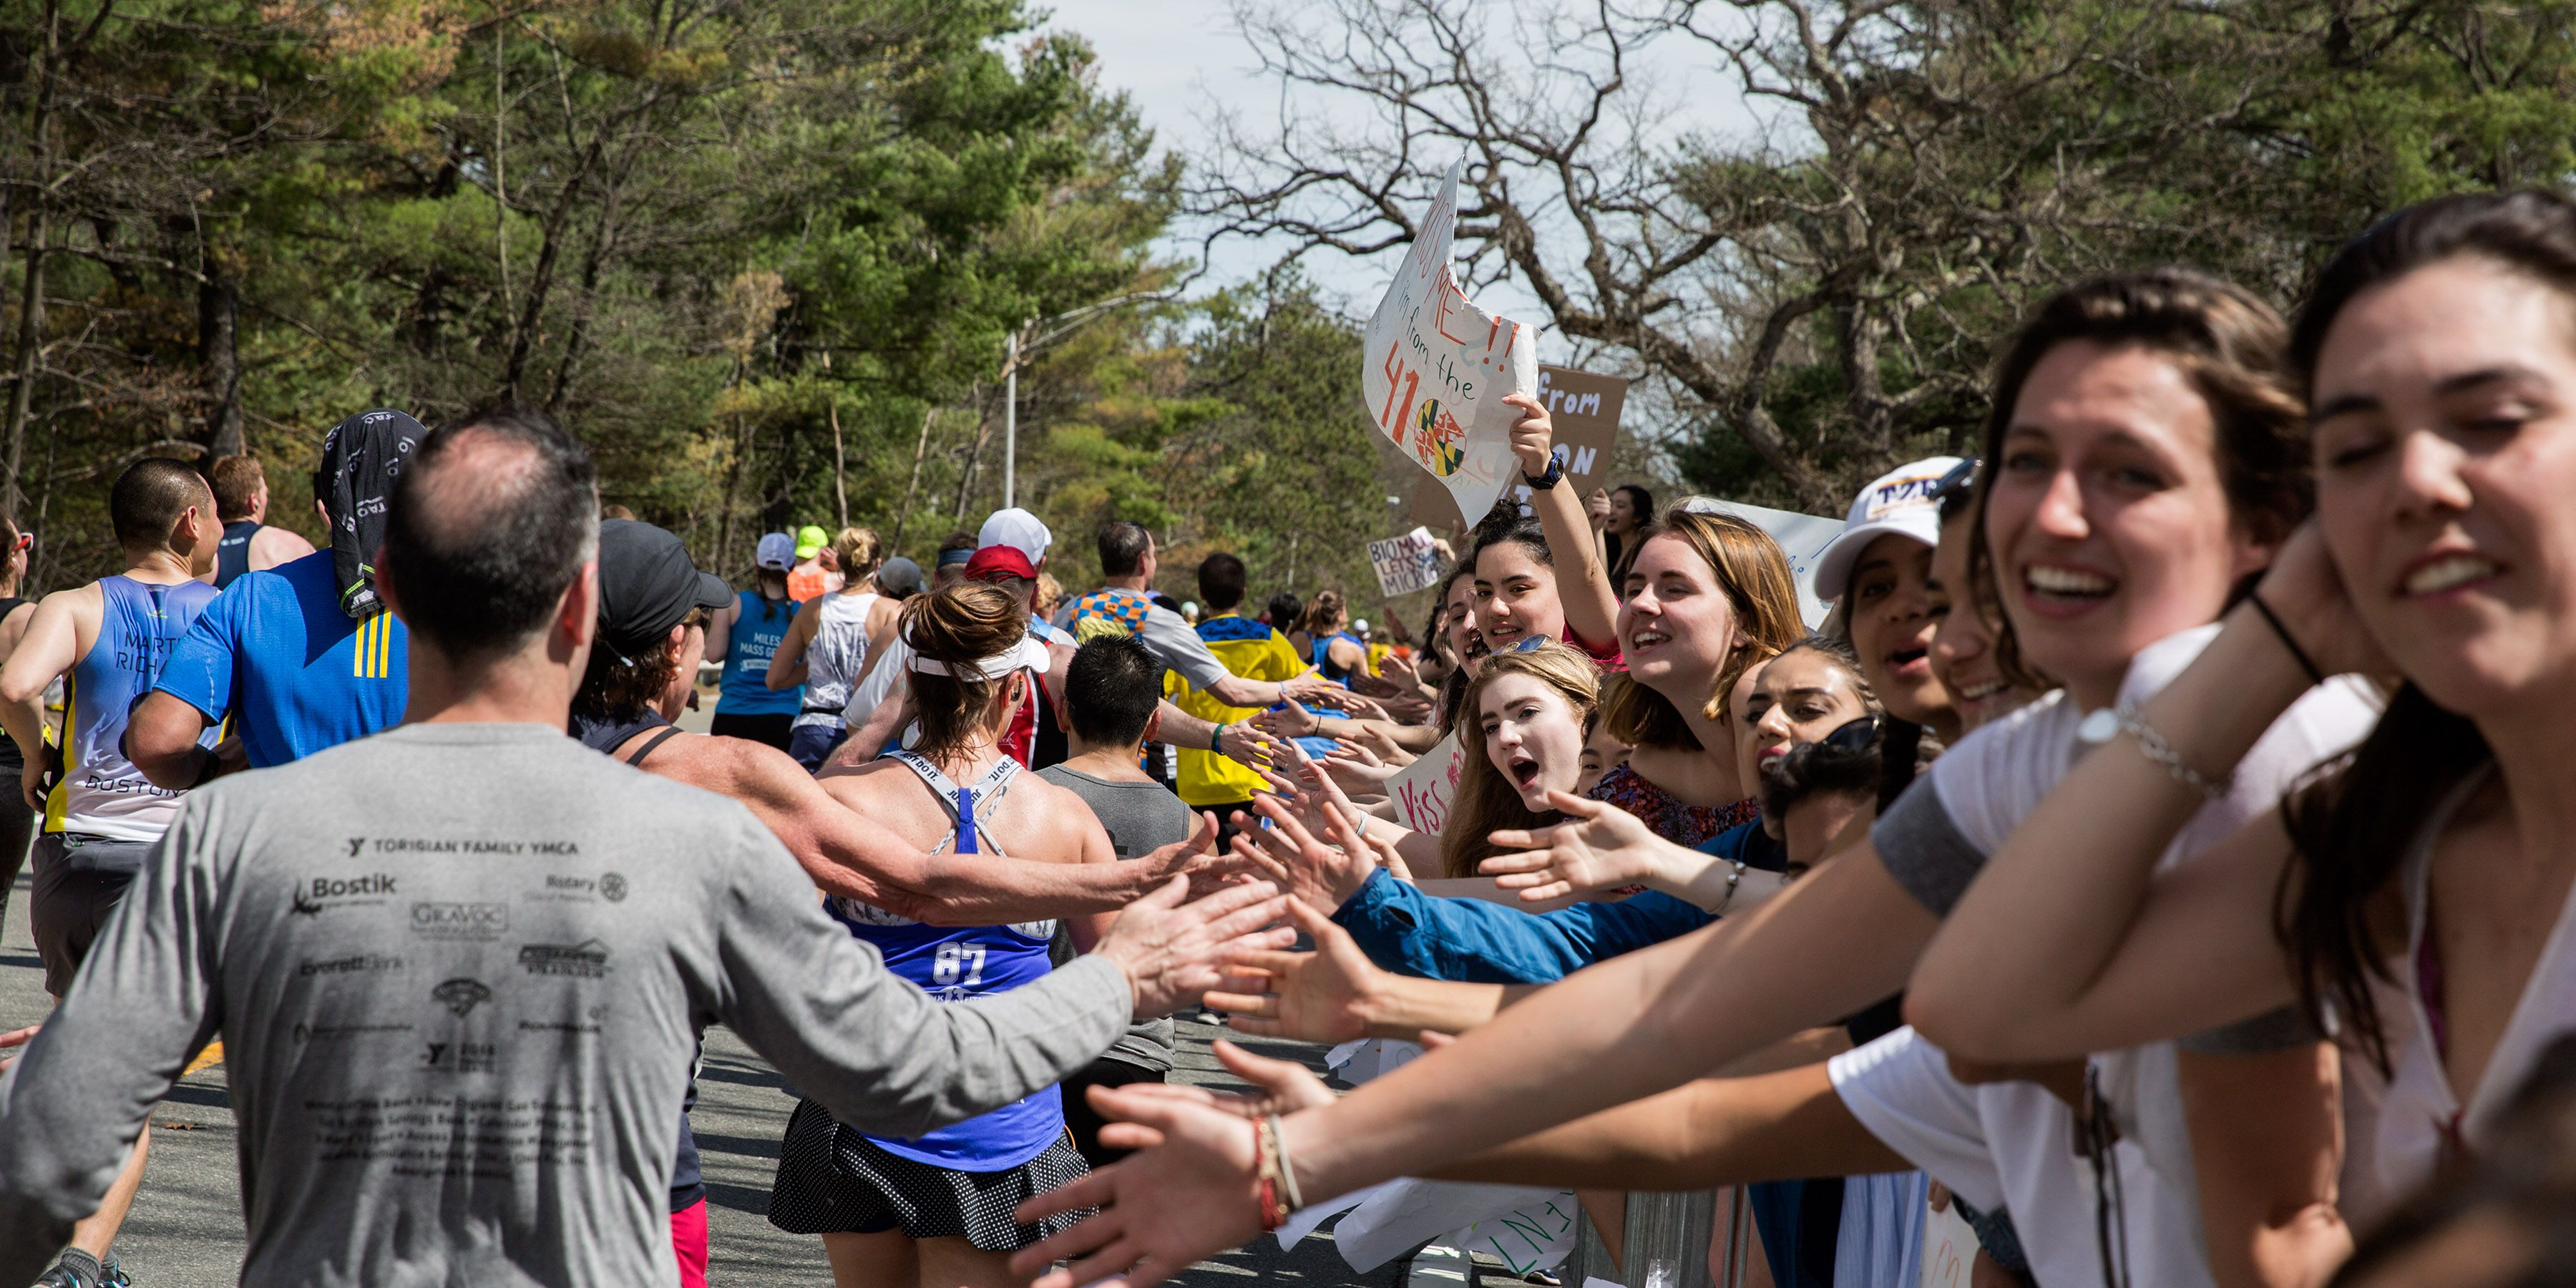 Crowds Gather Along Route of Boston Marathon To Cheer On Runners